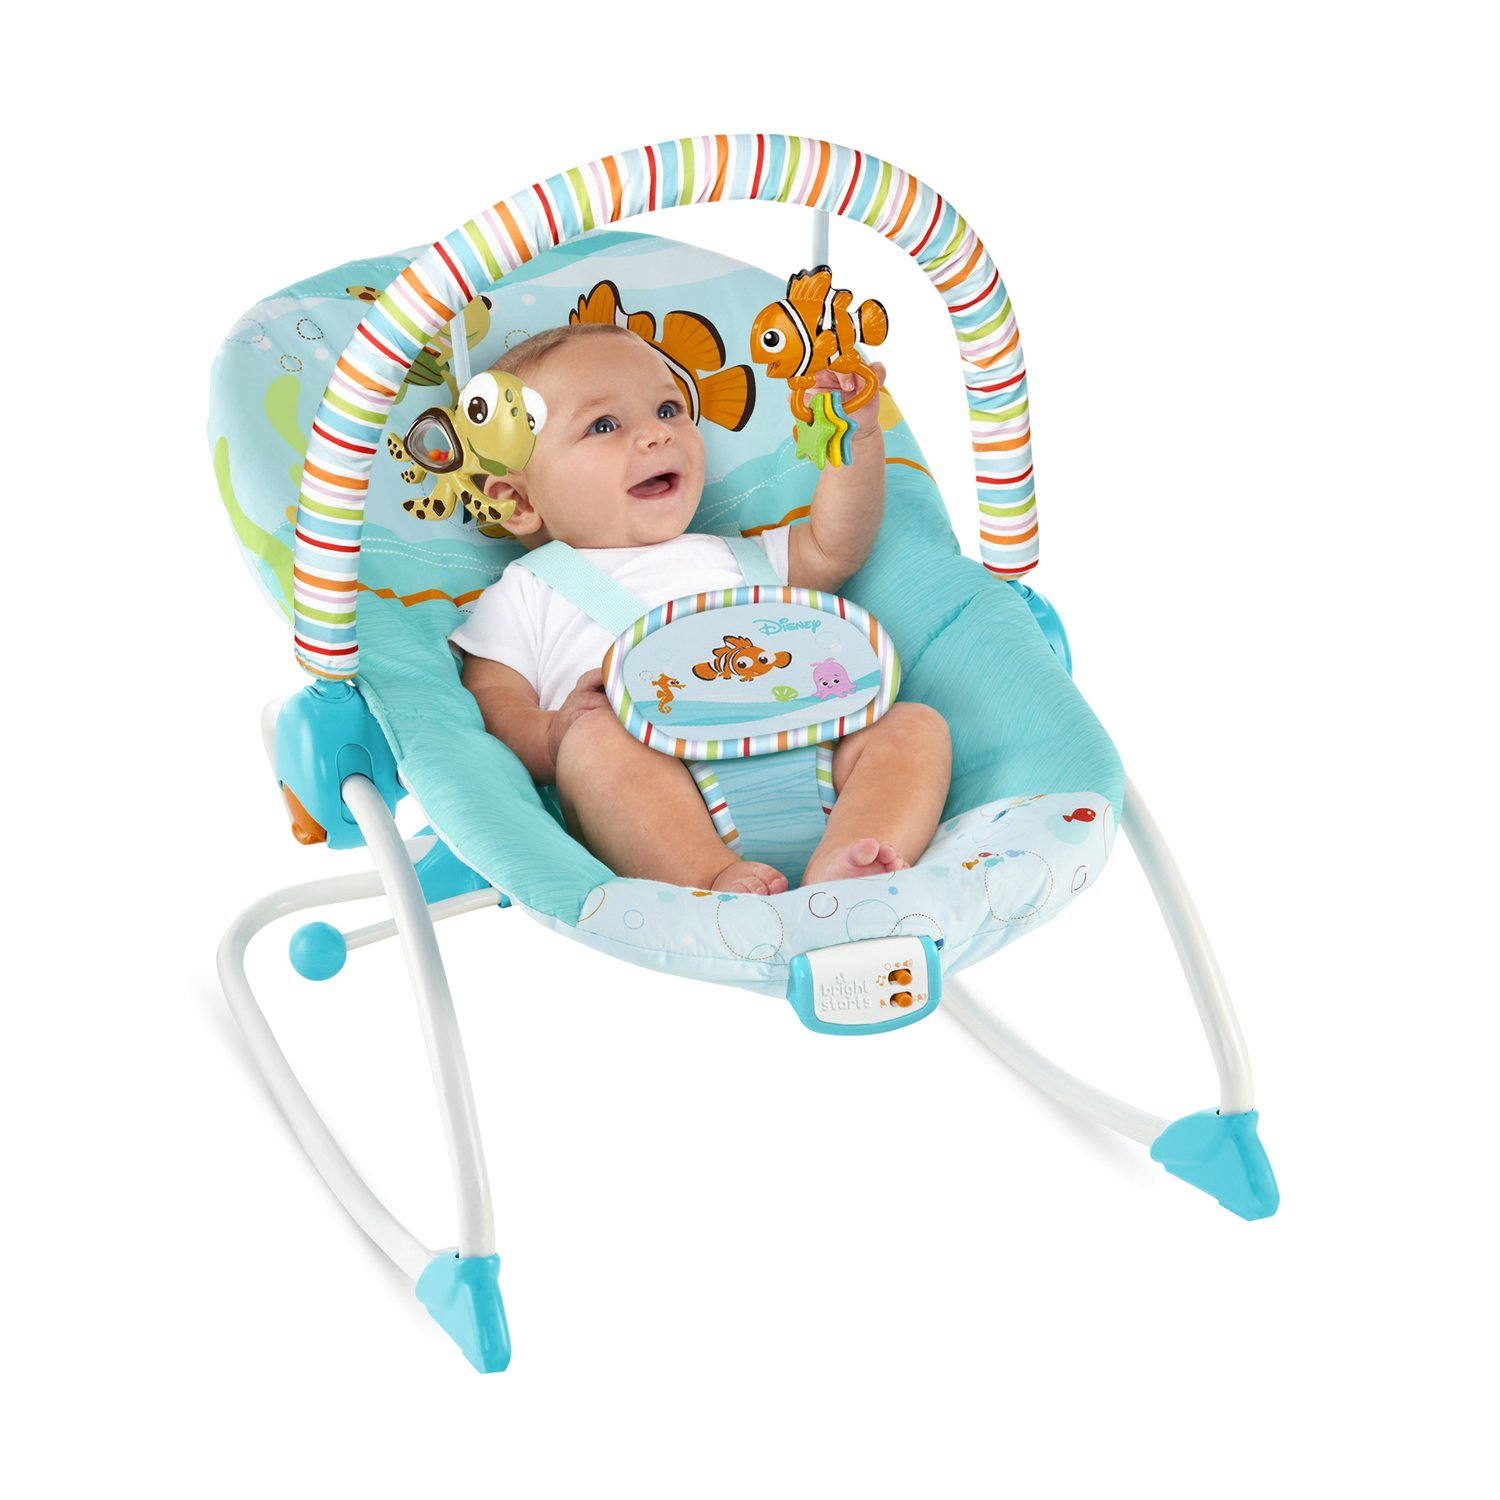 baby chair that vibrates electric was invented by finding nemo fins & friends infant to toddler rocker™